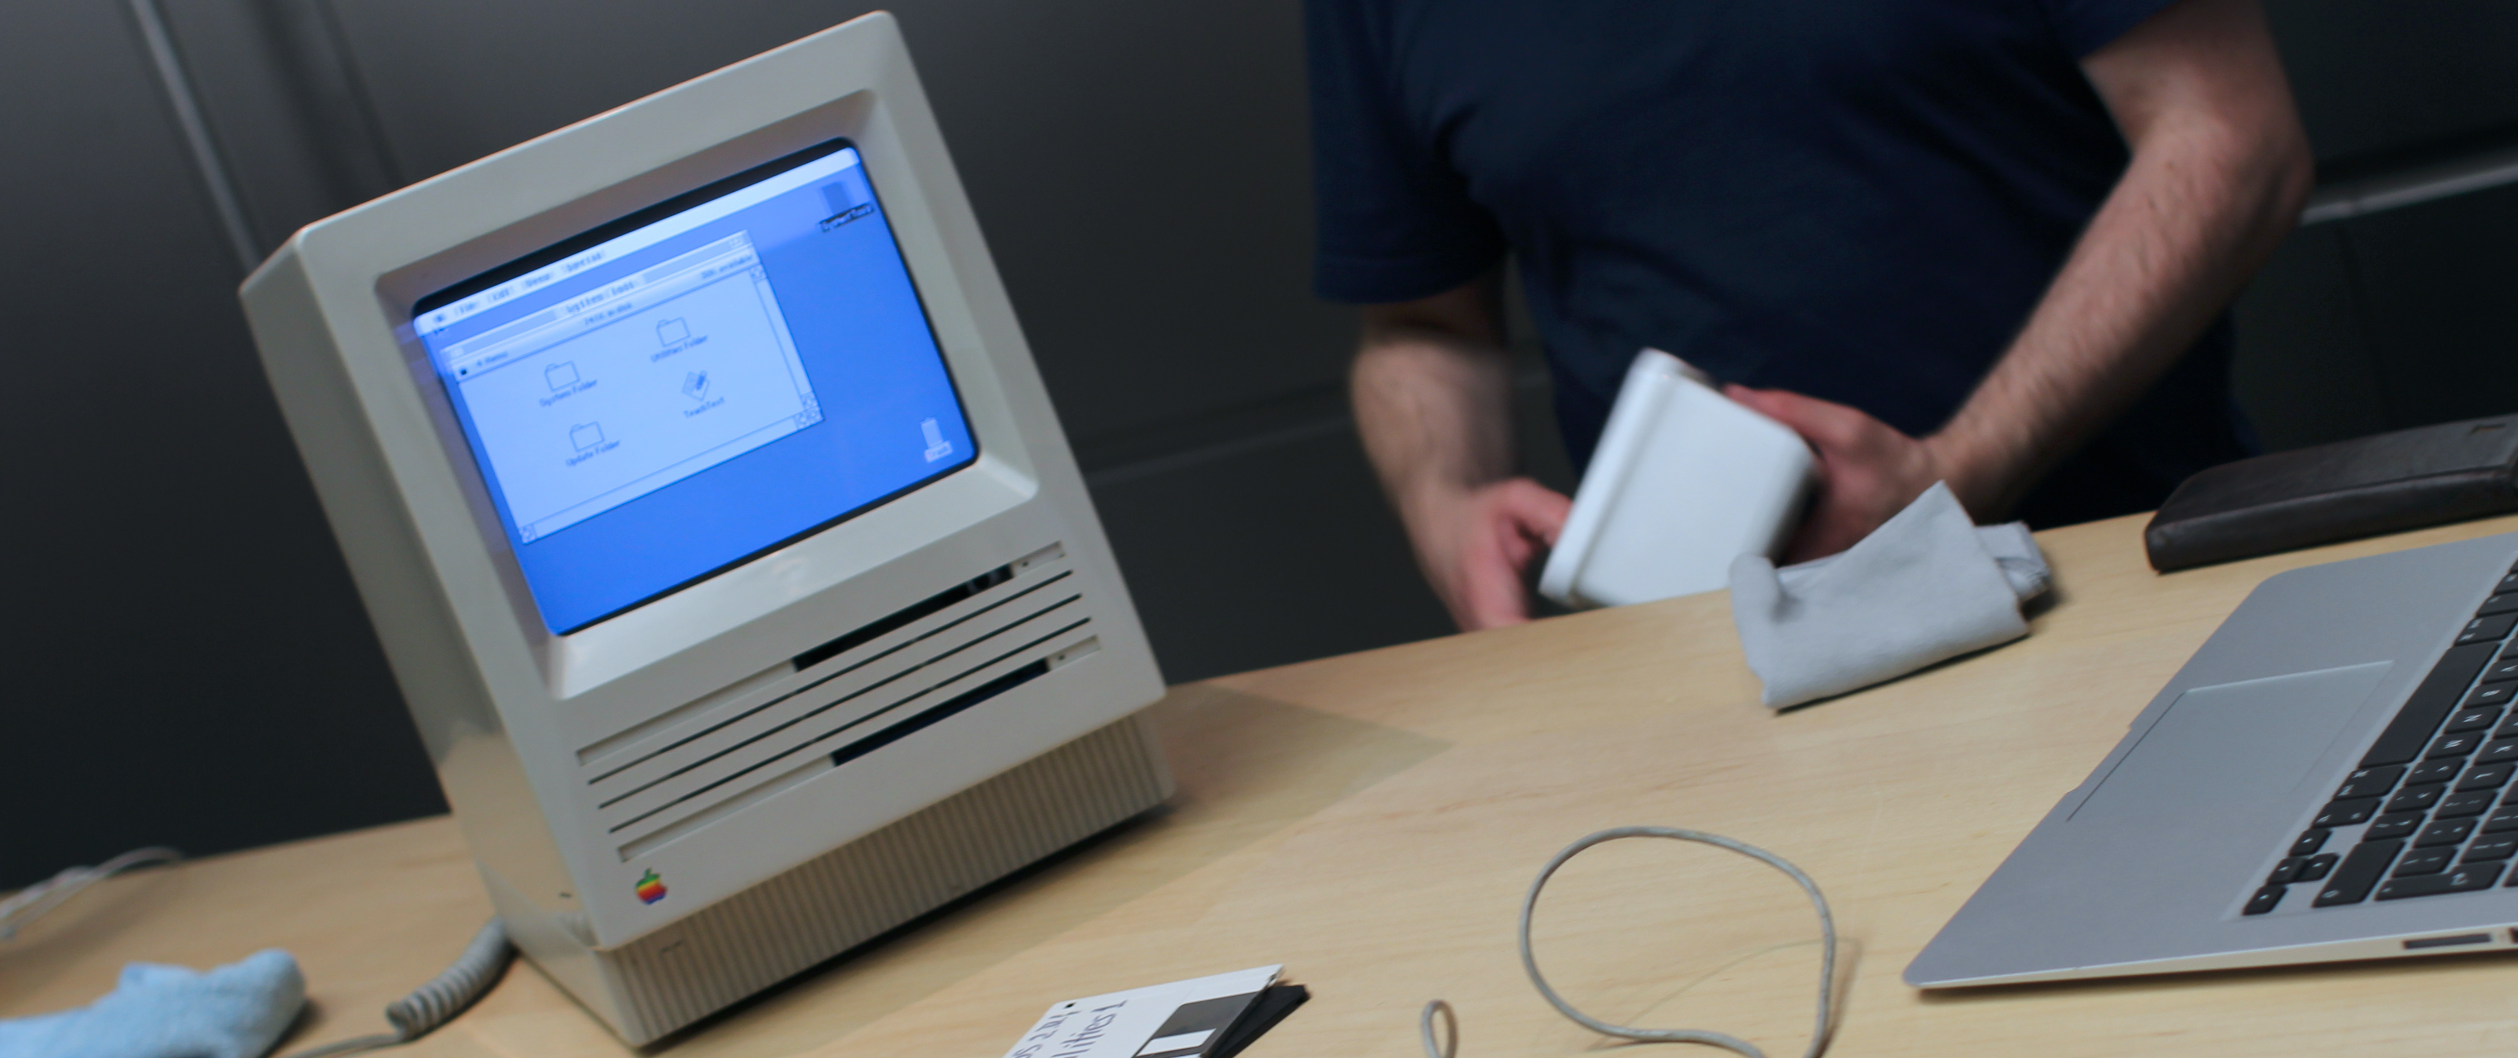 The 30 year old Mac goes back